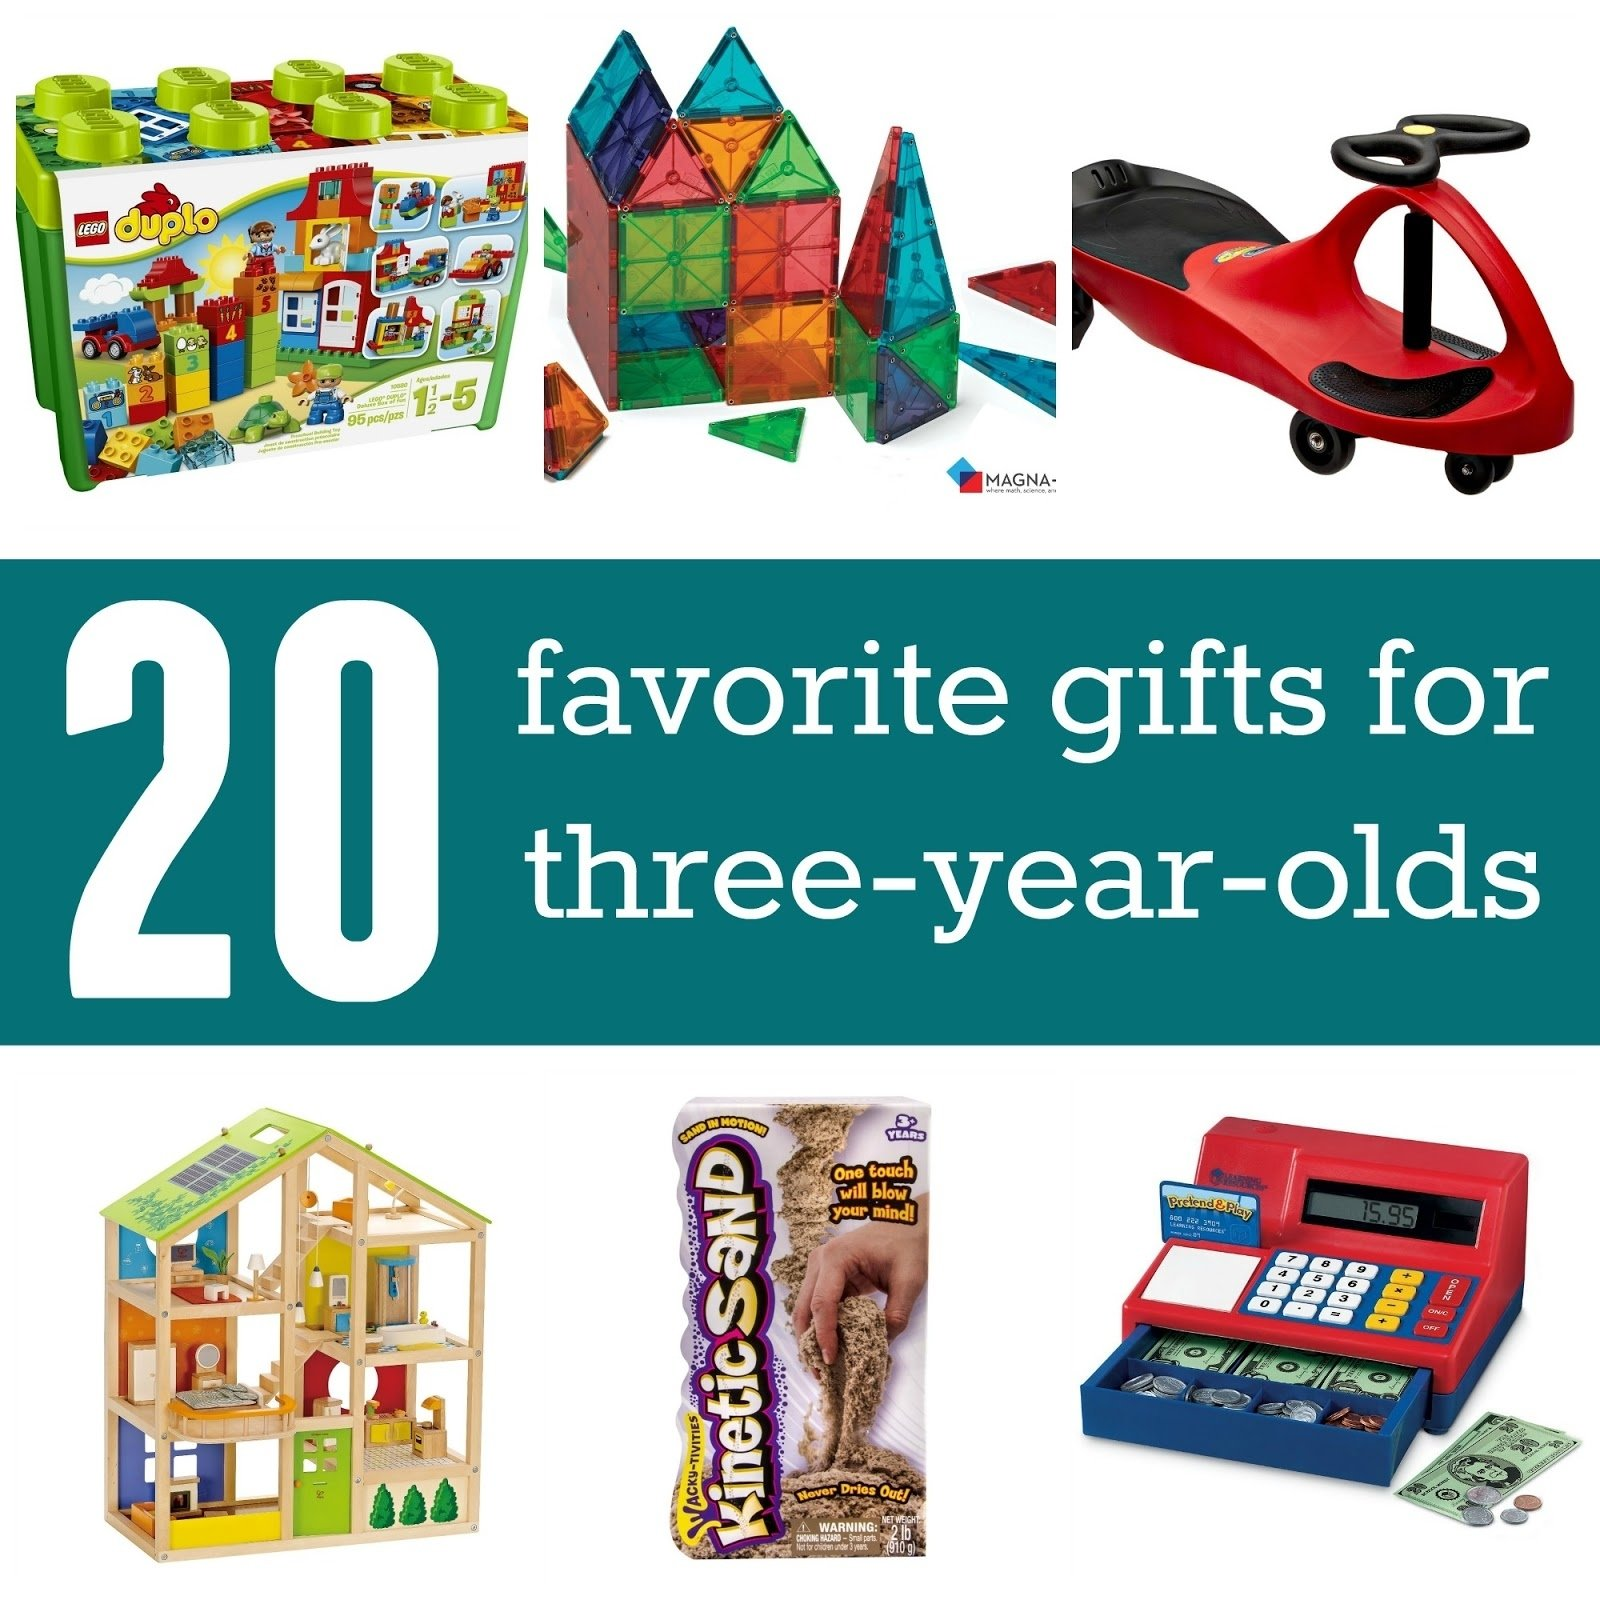 10 Spectacular Gift Ideas For 3 Year Old toddler approved favorite gifts for 3 year olds